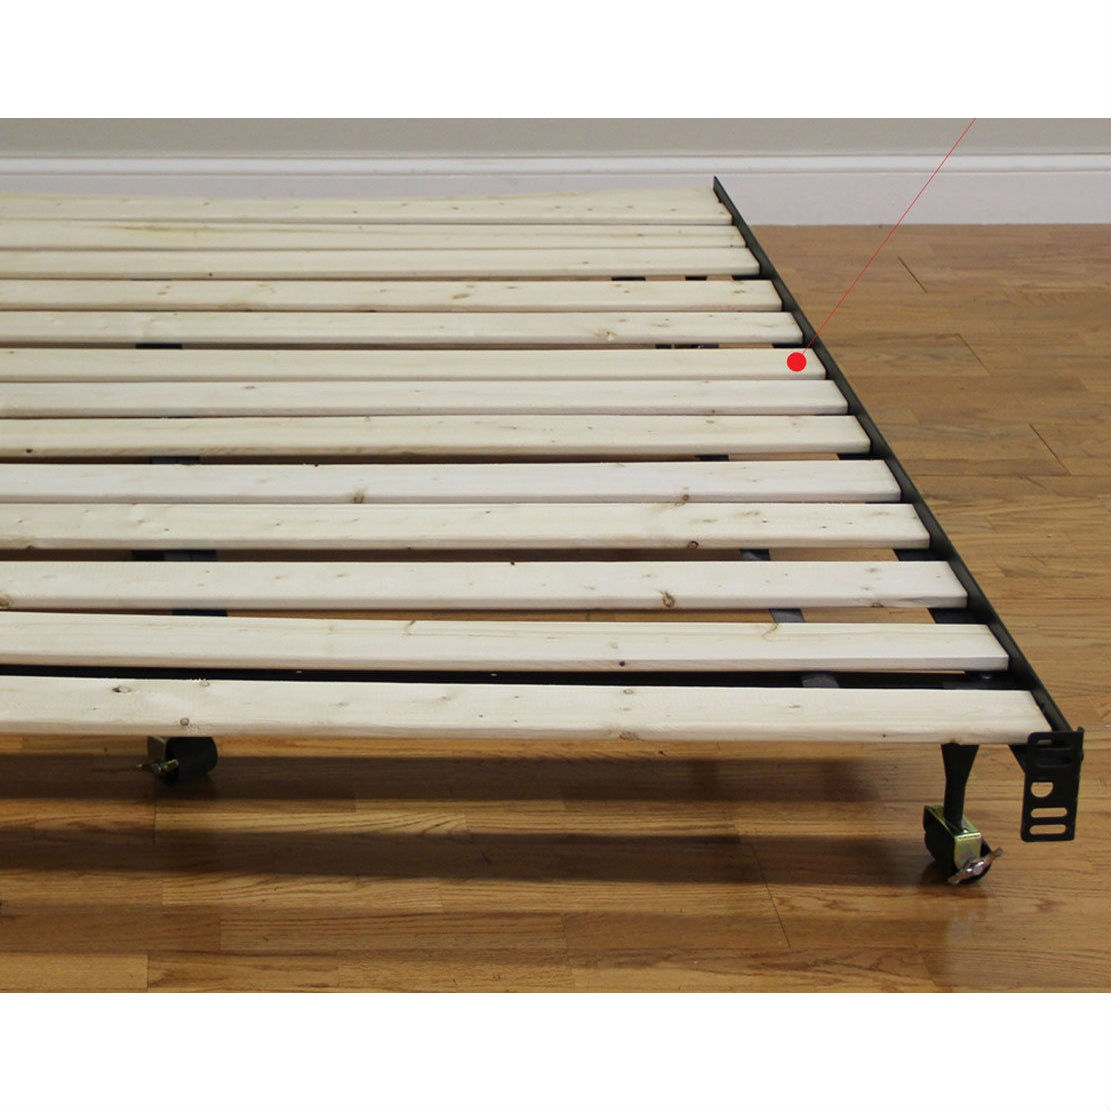 retail price 16900 - Wooden Bed Frames King Size